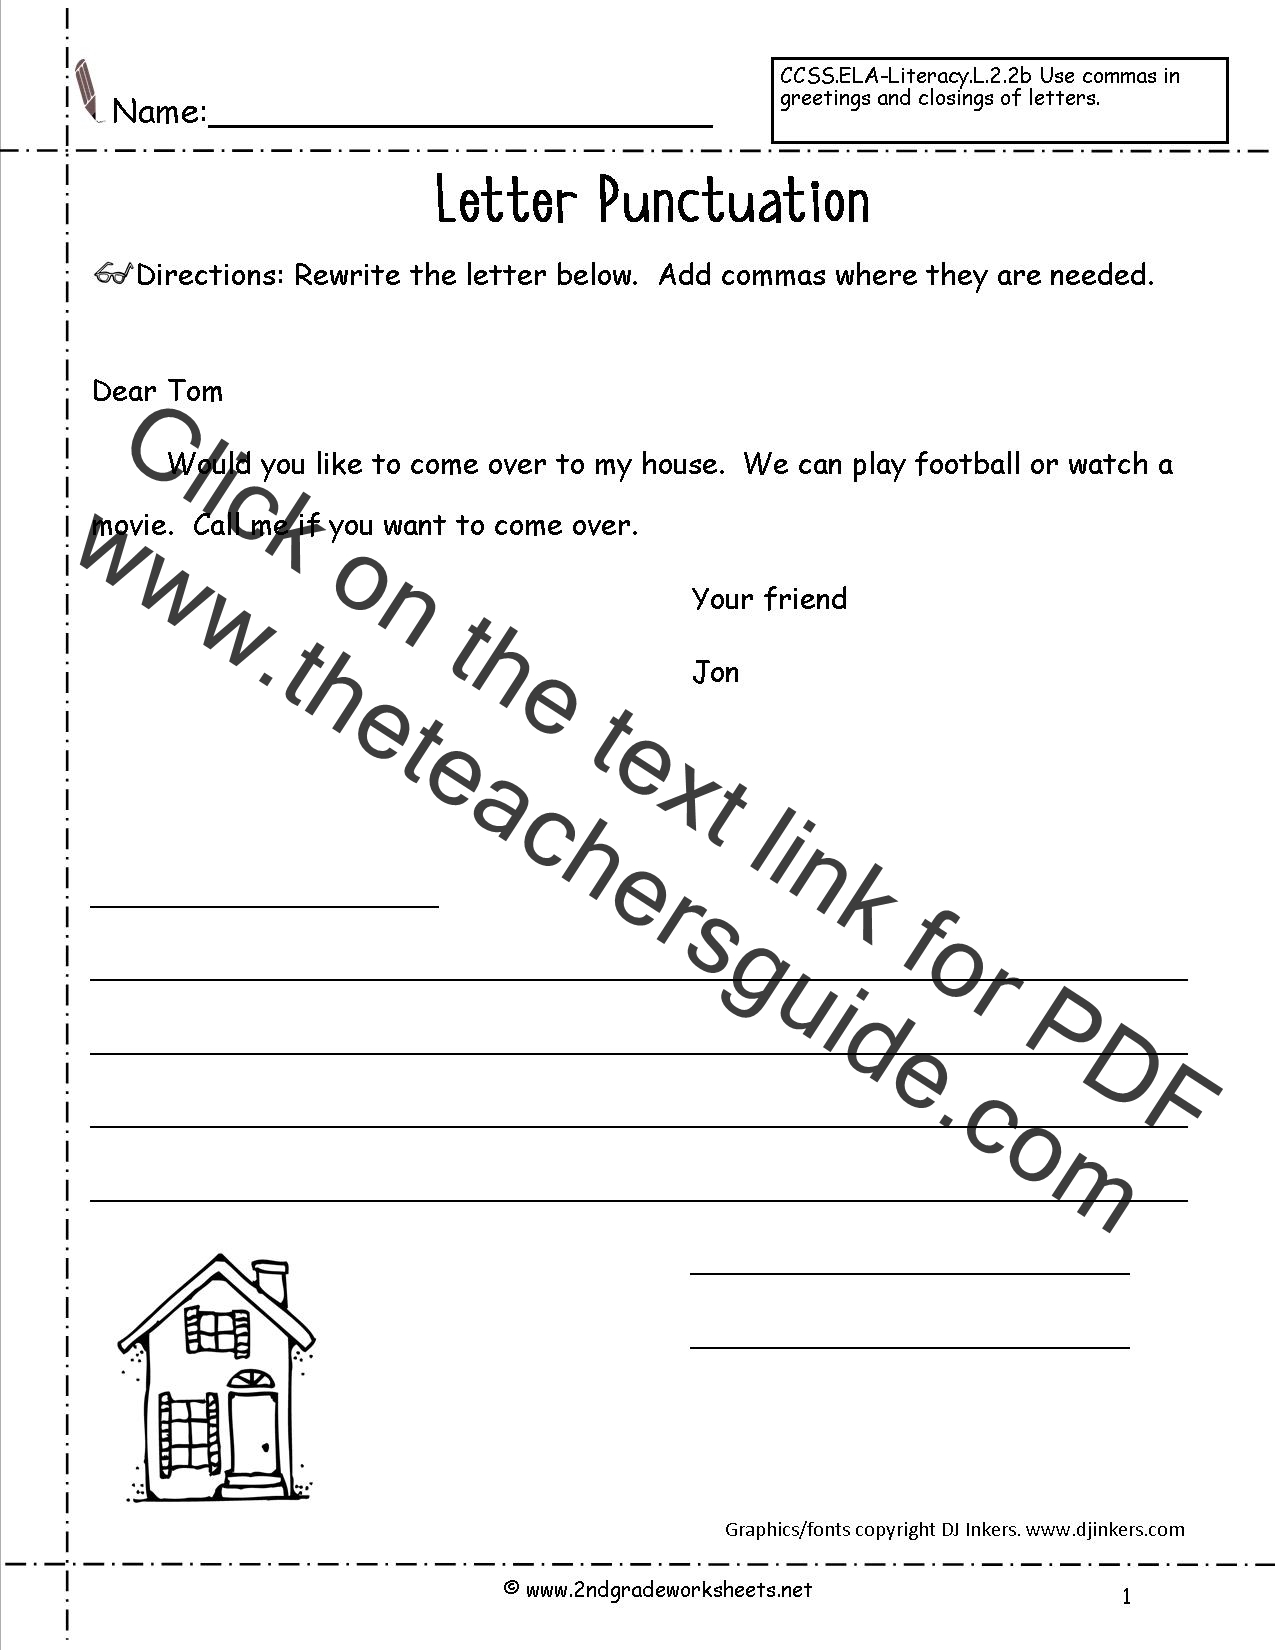 Letters and parts of a letter worksheet friendly letter punctuation spiritdancerdesigns Gallery